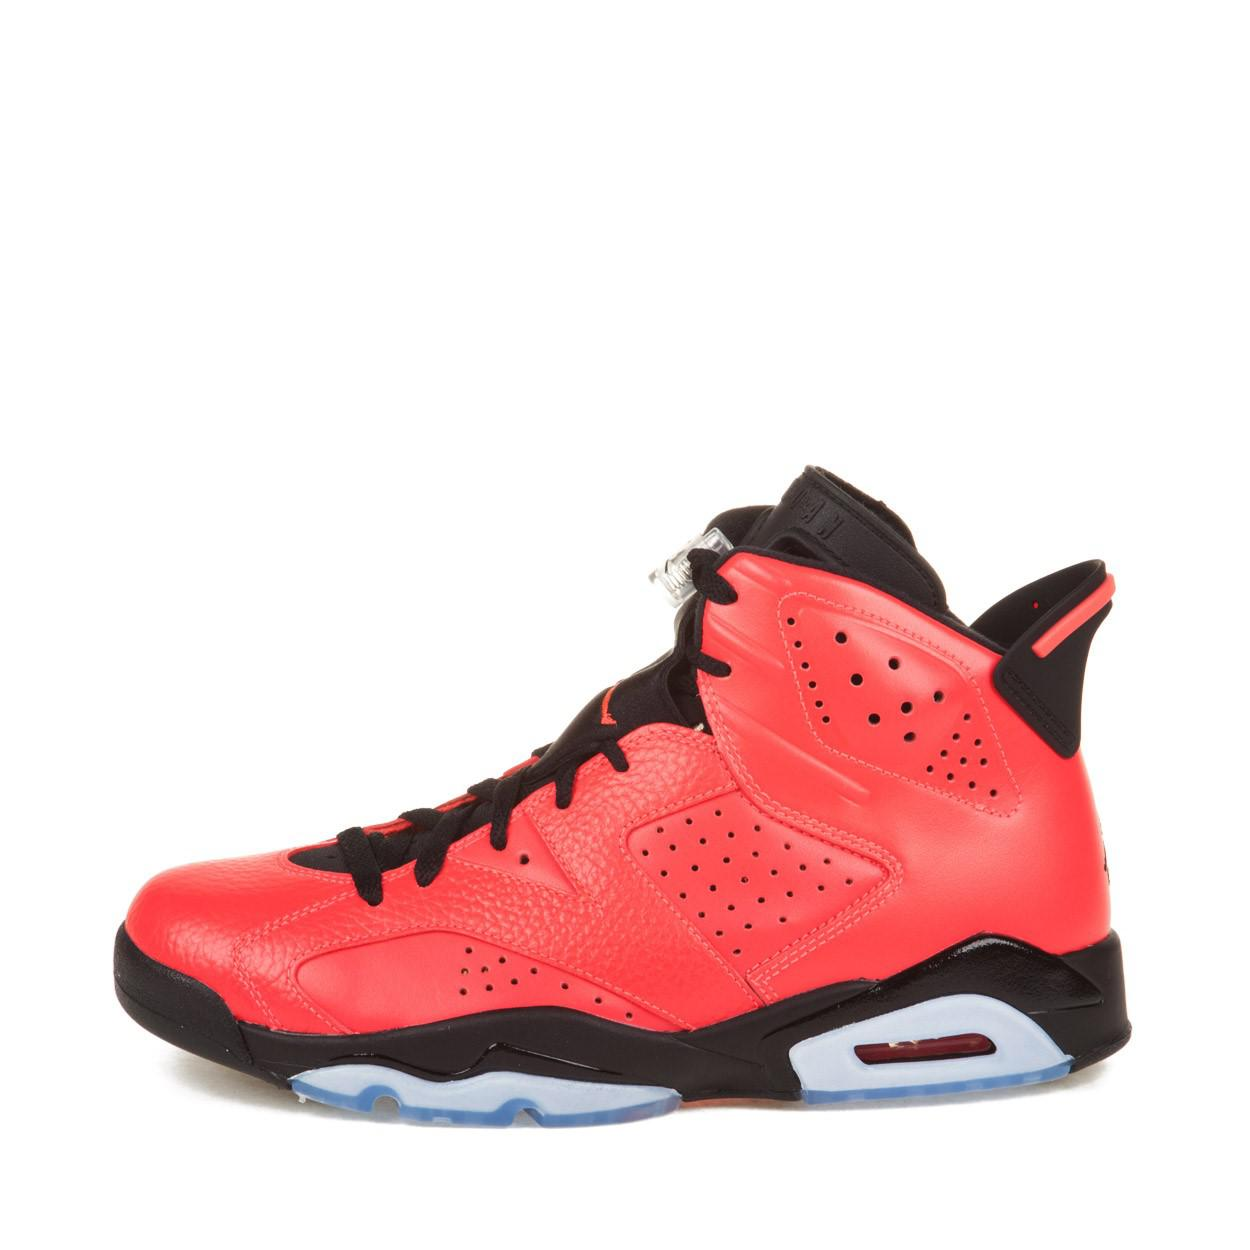 28da83c177aba9 Lyst - Nike Mens Air Jordan 6 Retro